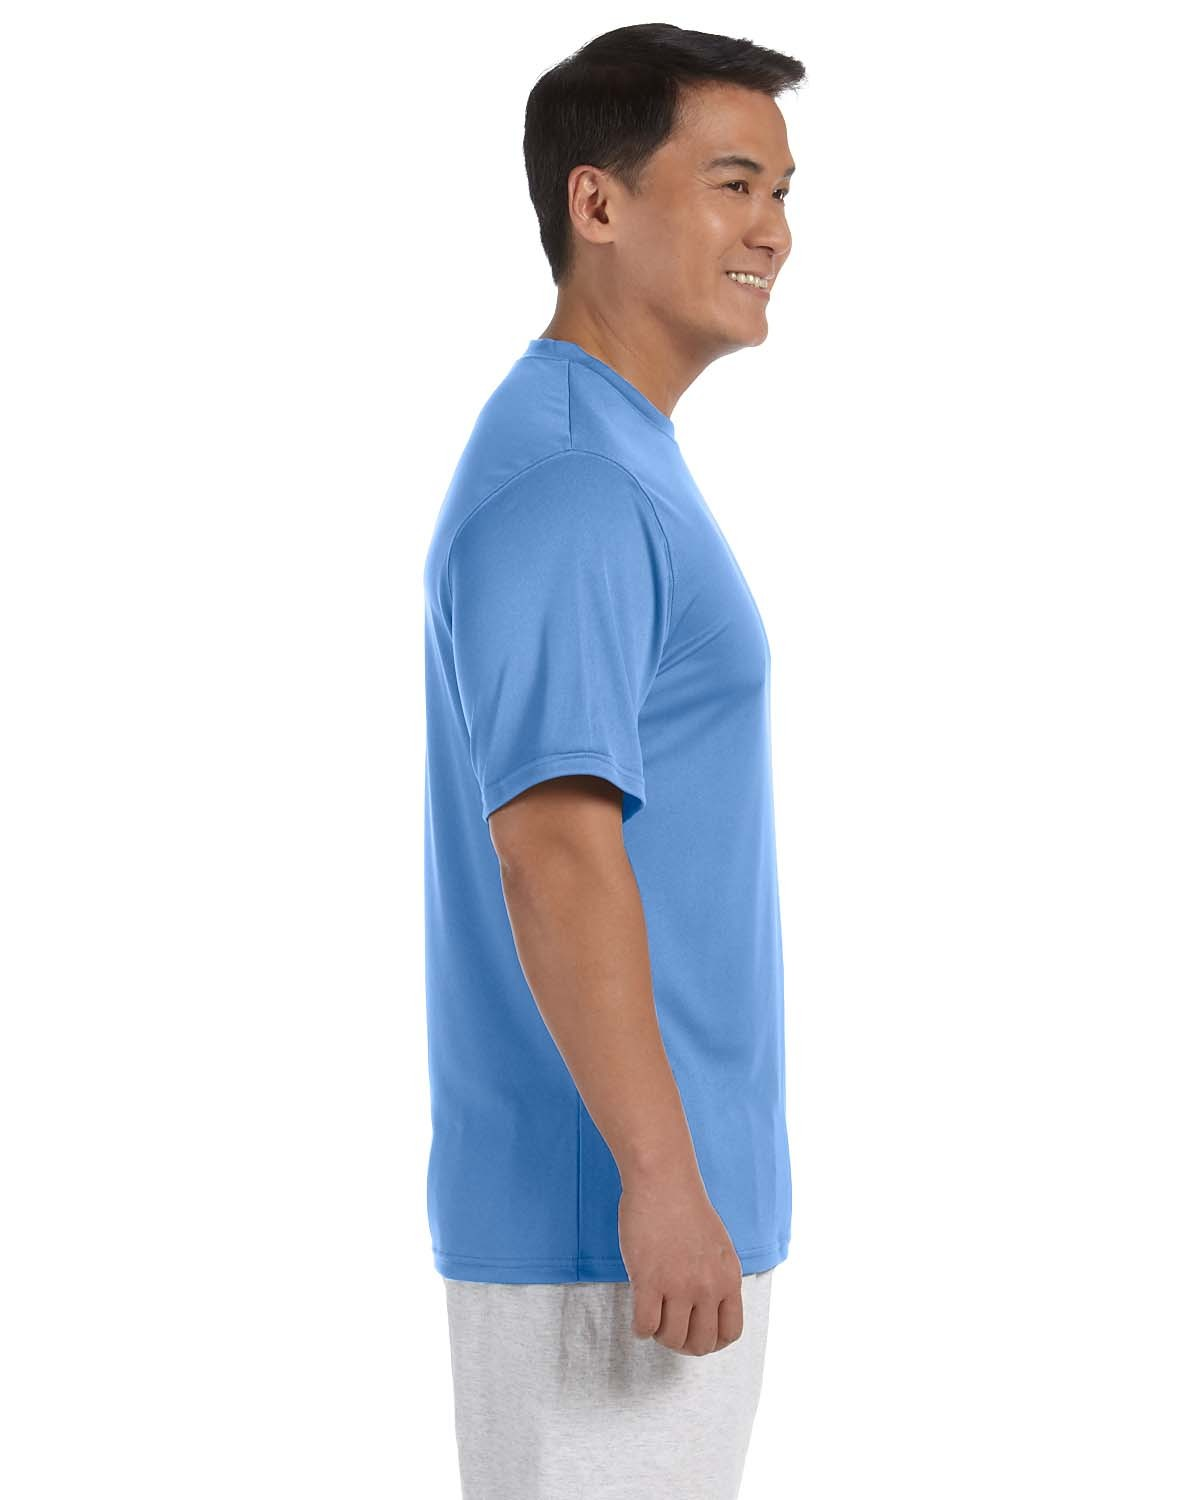 c8a51c8f5 Double Dry Interlock T-Shirt. Clearance CW22_52 View larger. Previous.  CW22_51 ...